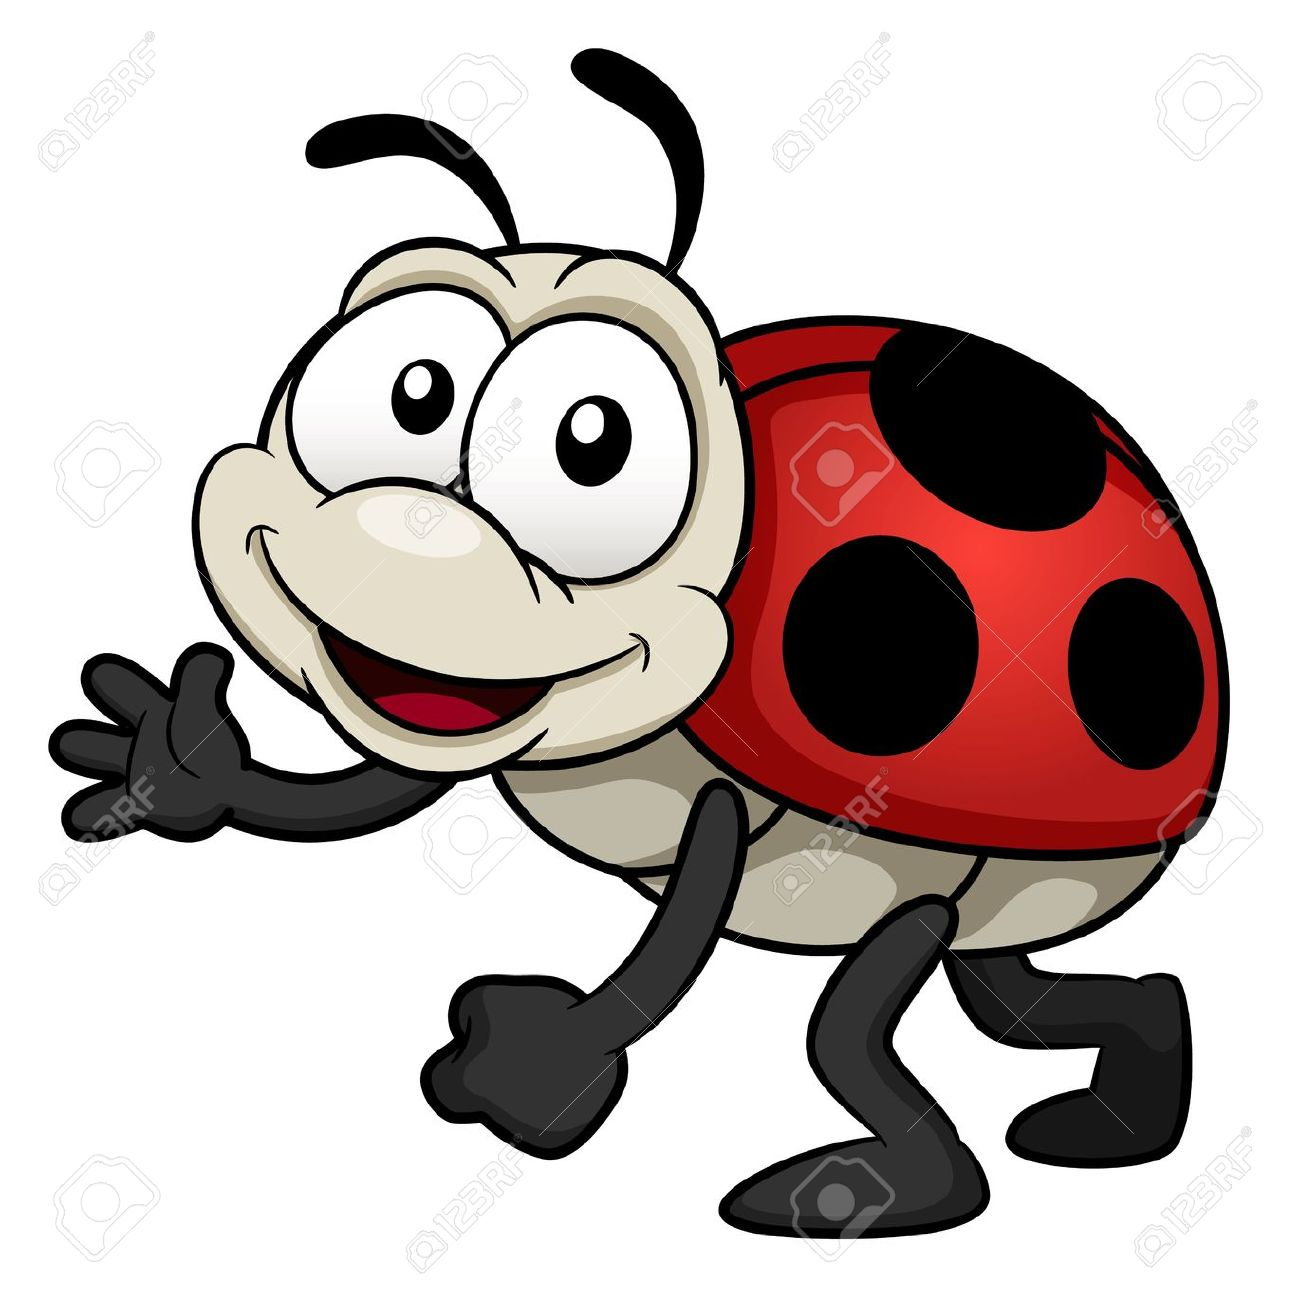 Illustration Of Cartoon Lady Bug Royalty Free Cliparts, Vectors.